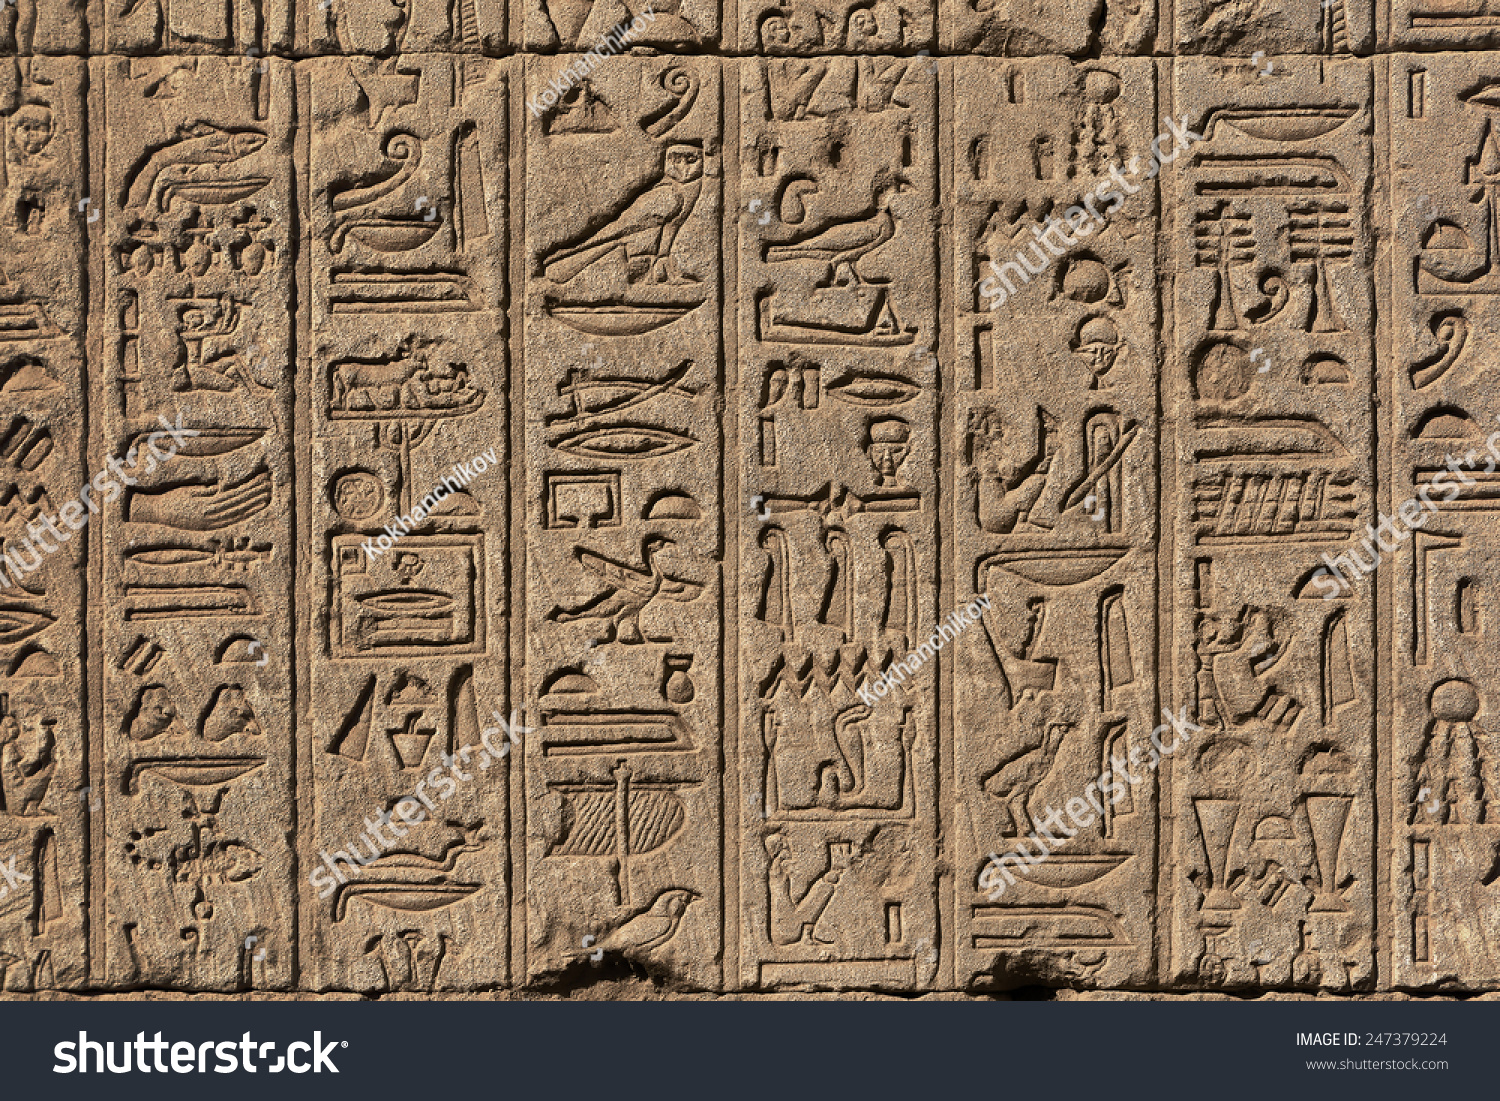 Hieroglyphic carvings on exterior walls ancient stock